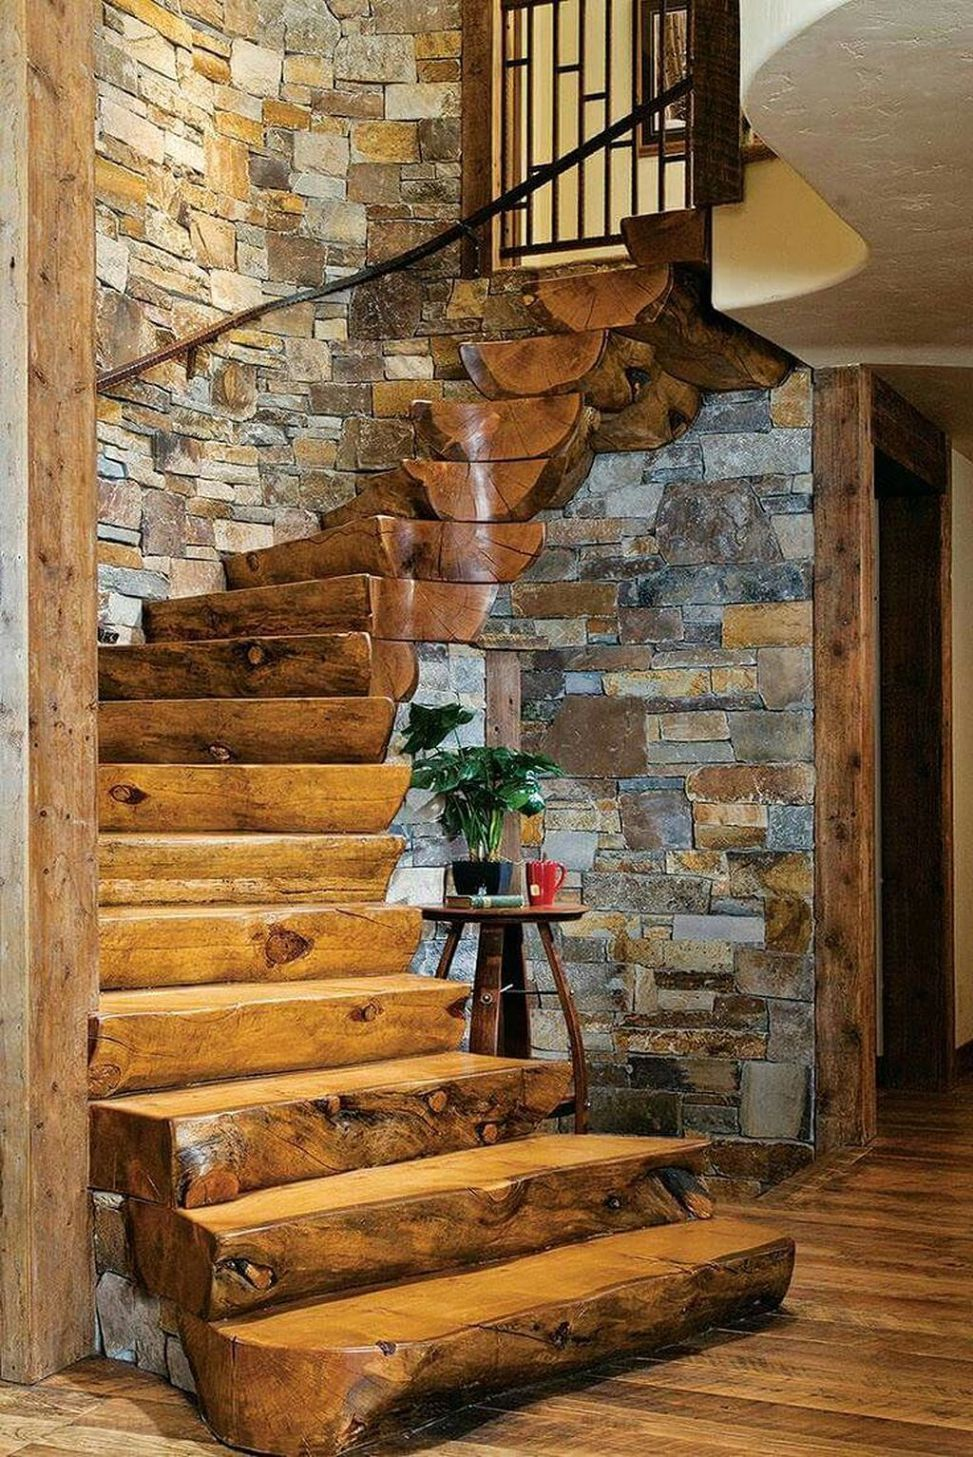 Amazing Rustic Lake House Decorating Ideas 21 In 2018